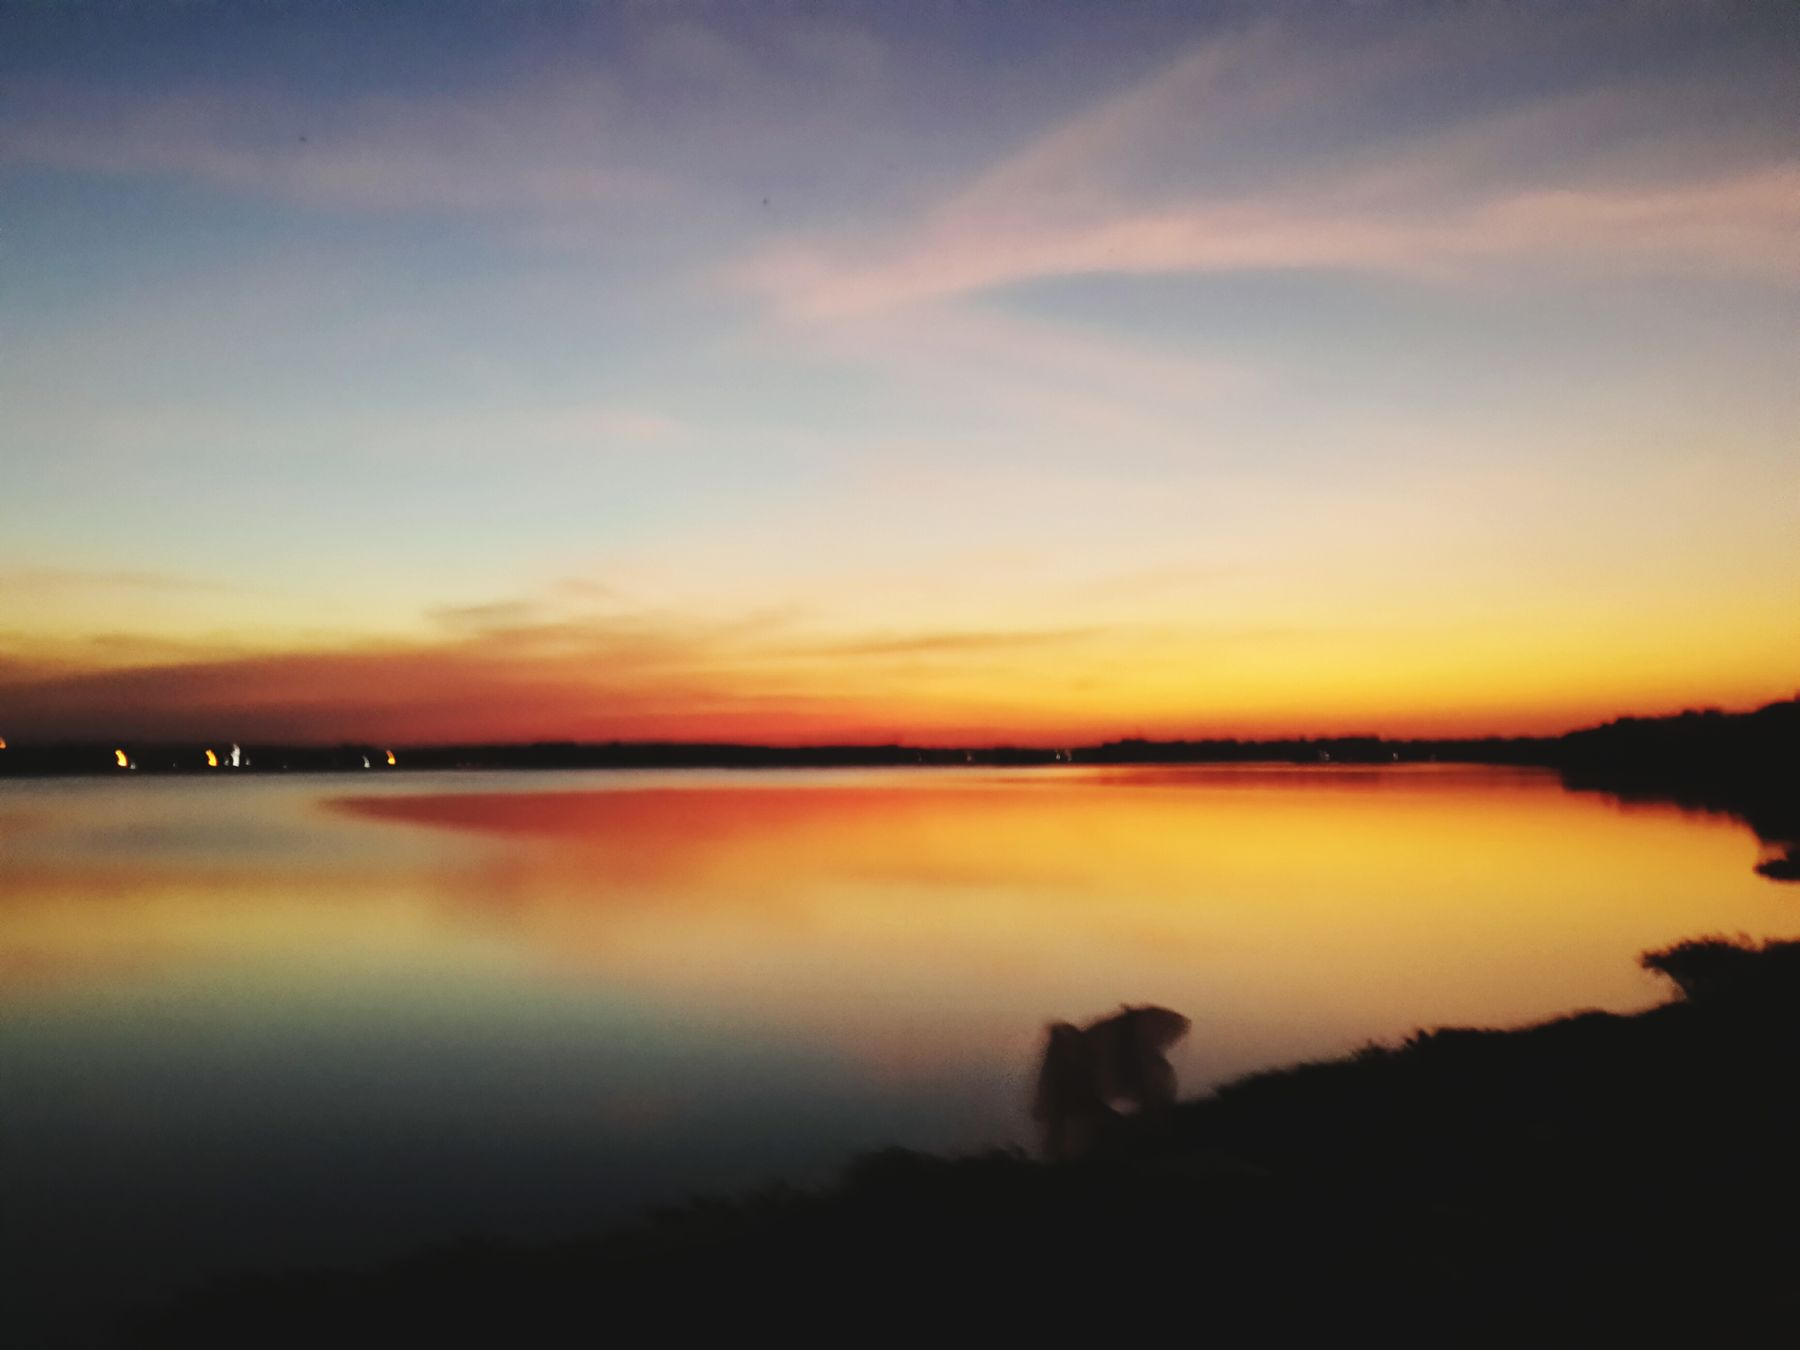 Sunset #sun #clouds #skylovers #sky #nature #beautifulinnature #naturalbeauty #photography #landscape Lovely Weather Beautiful Day Reflection Water Reflections Lake View Peace And Quiet EyeEm Nature Lover Sunset Clouds And Sky